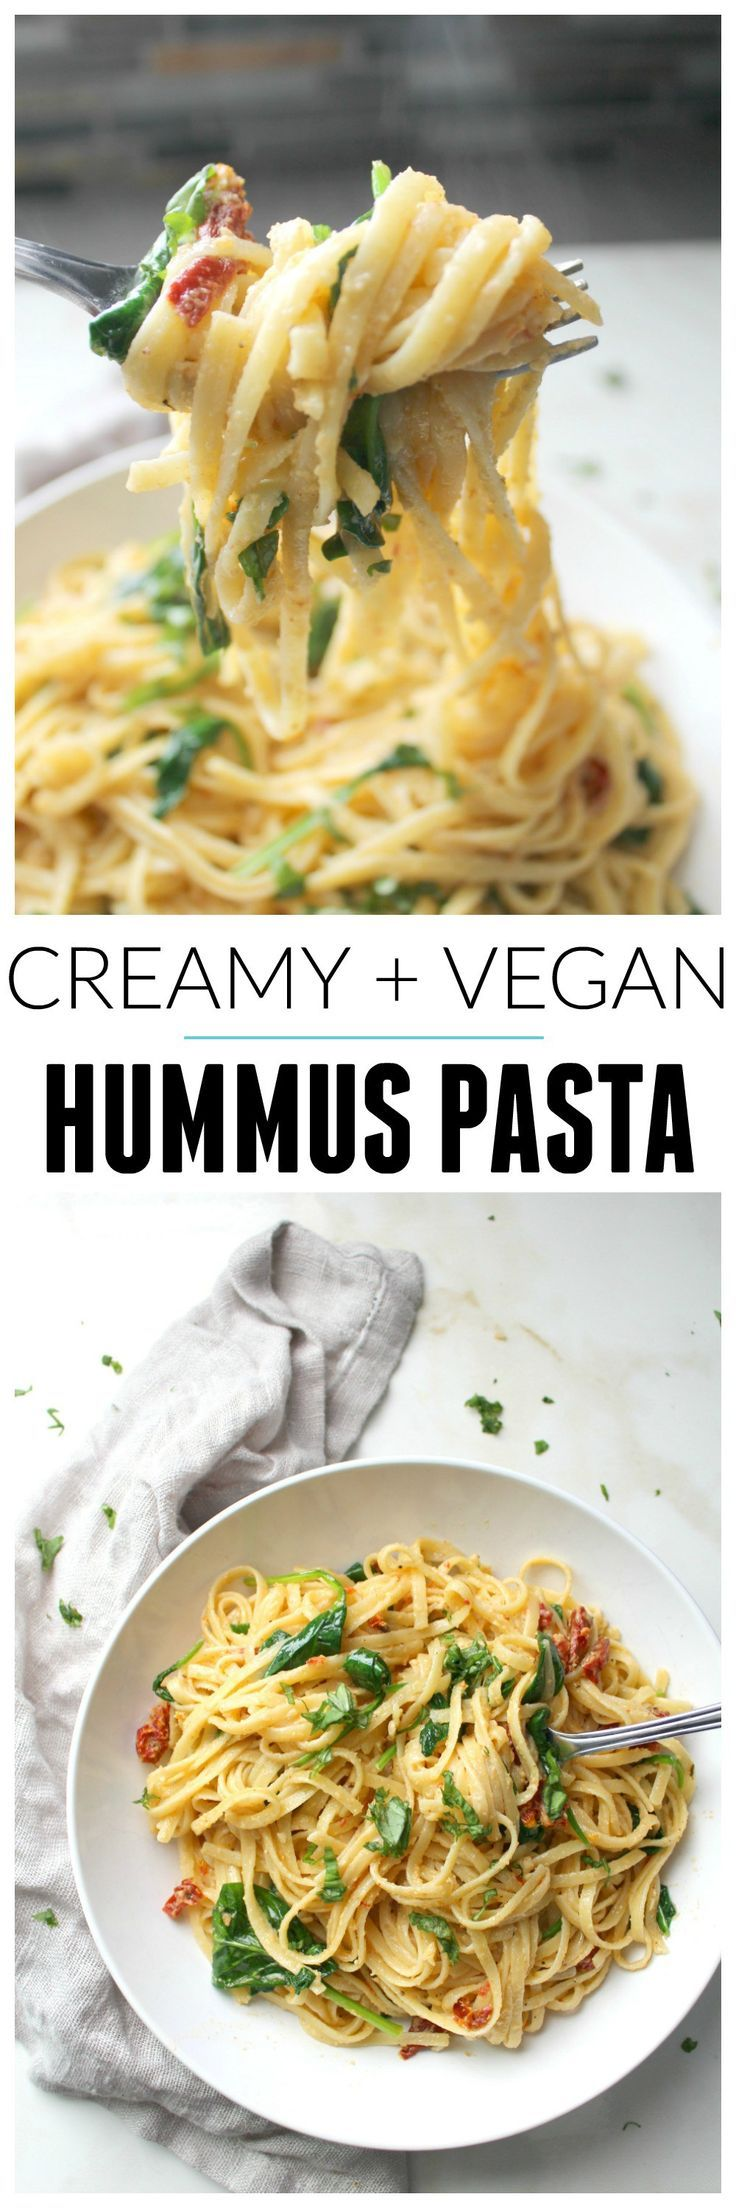 One Pot Creamy Hummus Pasta - This Savory Vegan